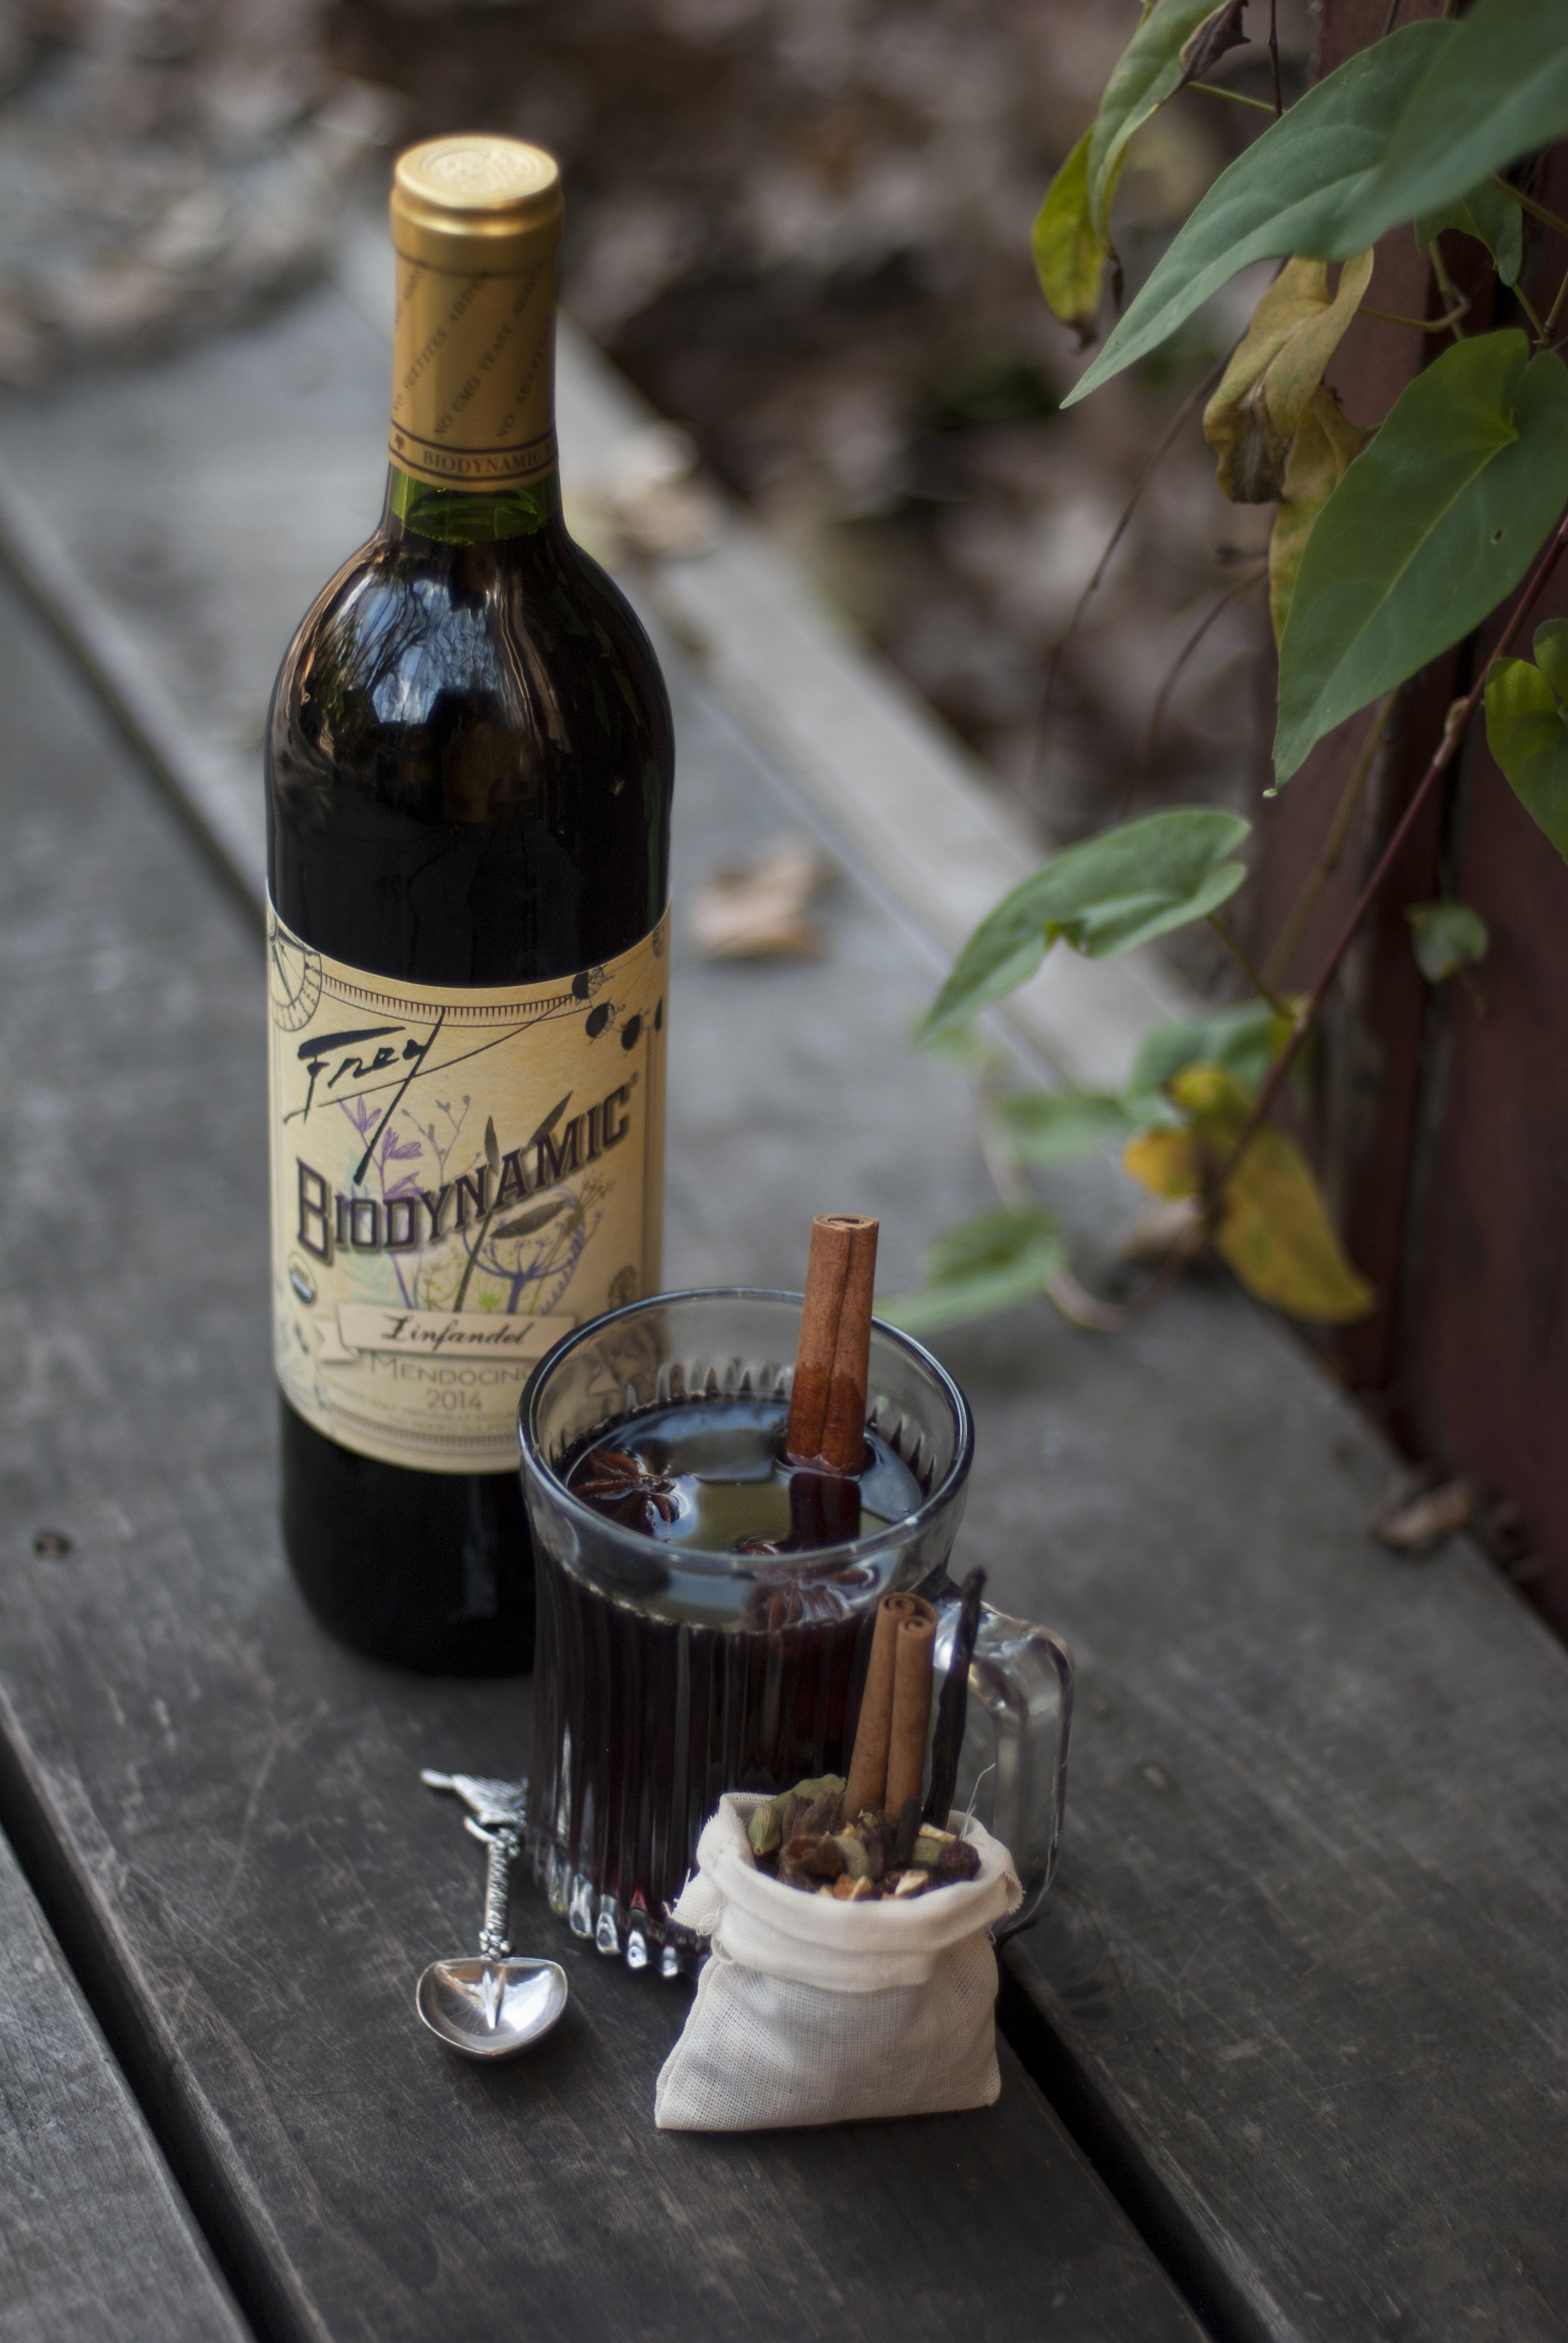 mulled wine recipe - mulled wine - wine - organic wine - biodynamic - biodynamic wine - frey vineyards - frey wine - red wine - holiday beverages - beverages